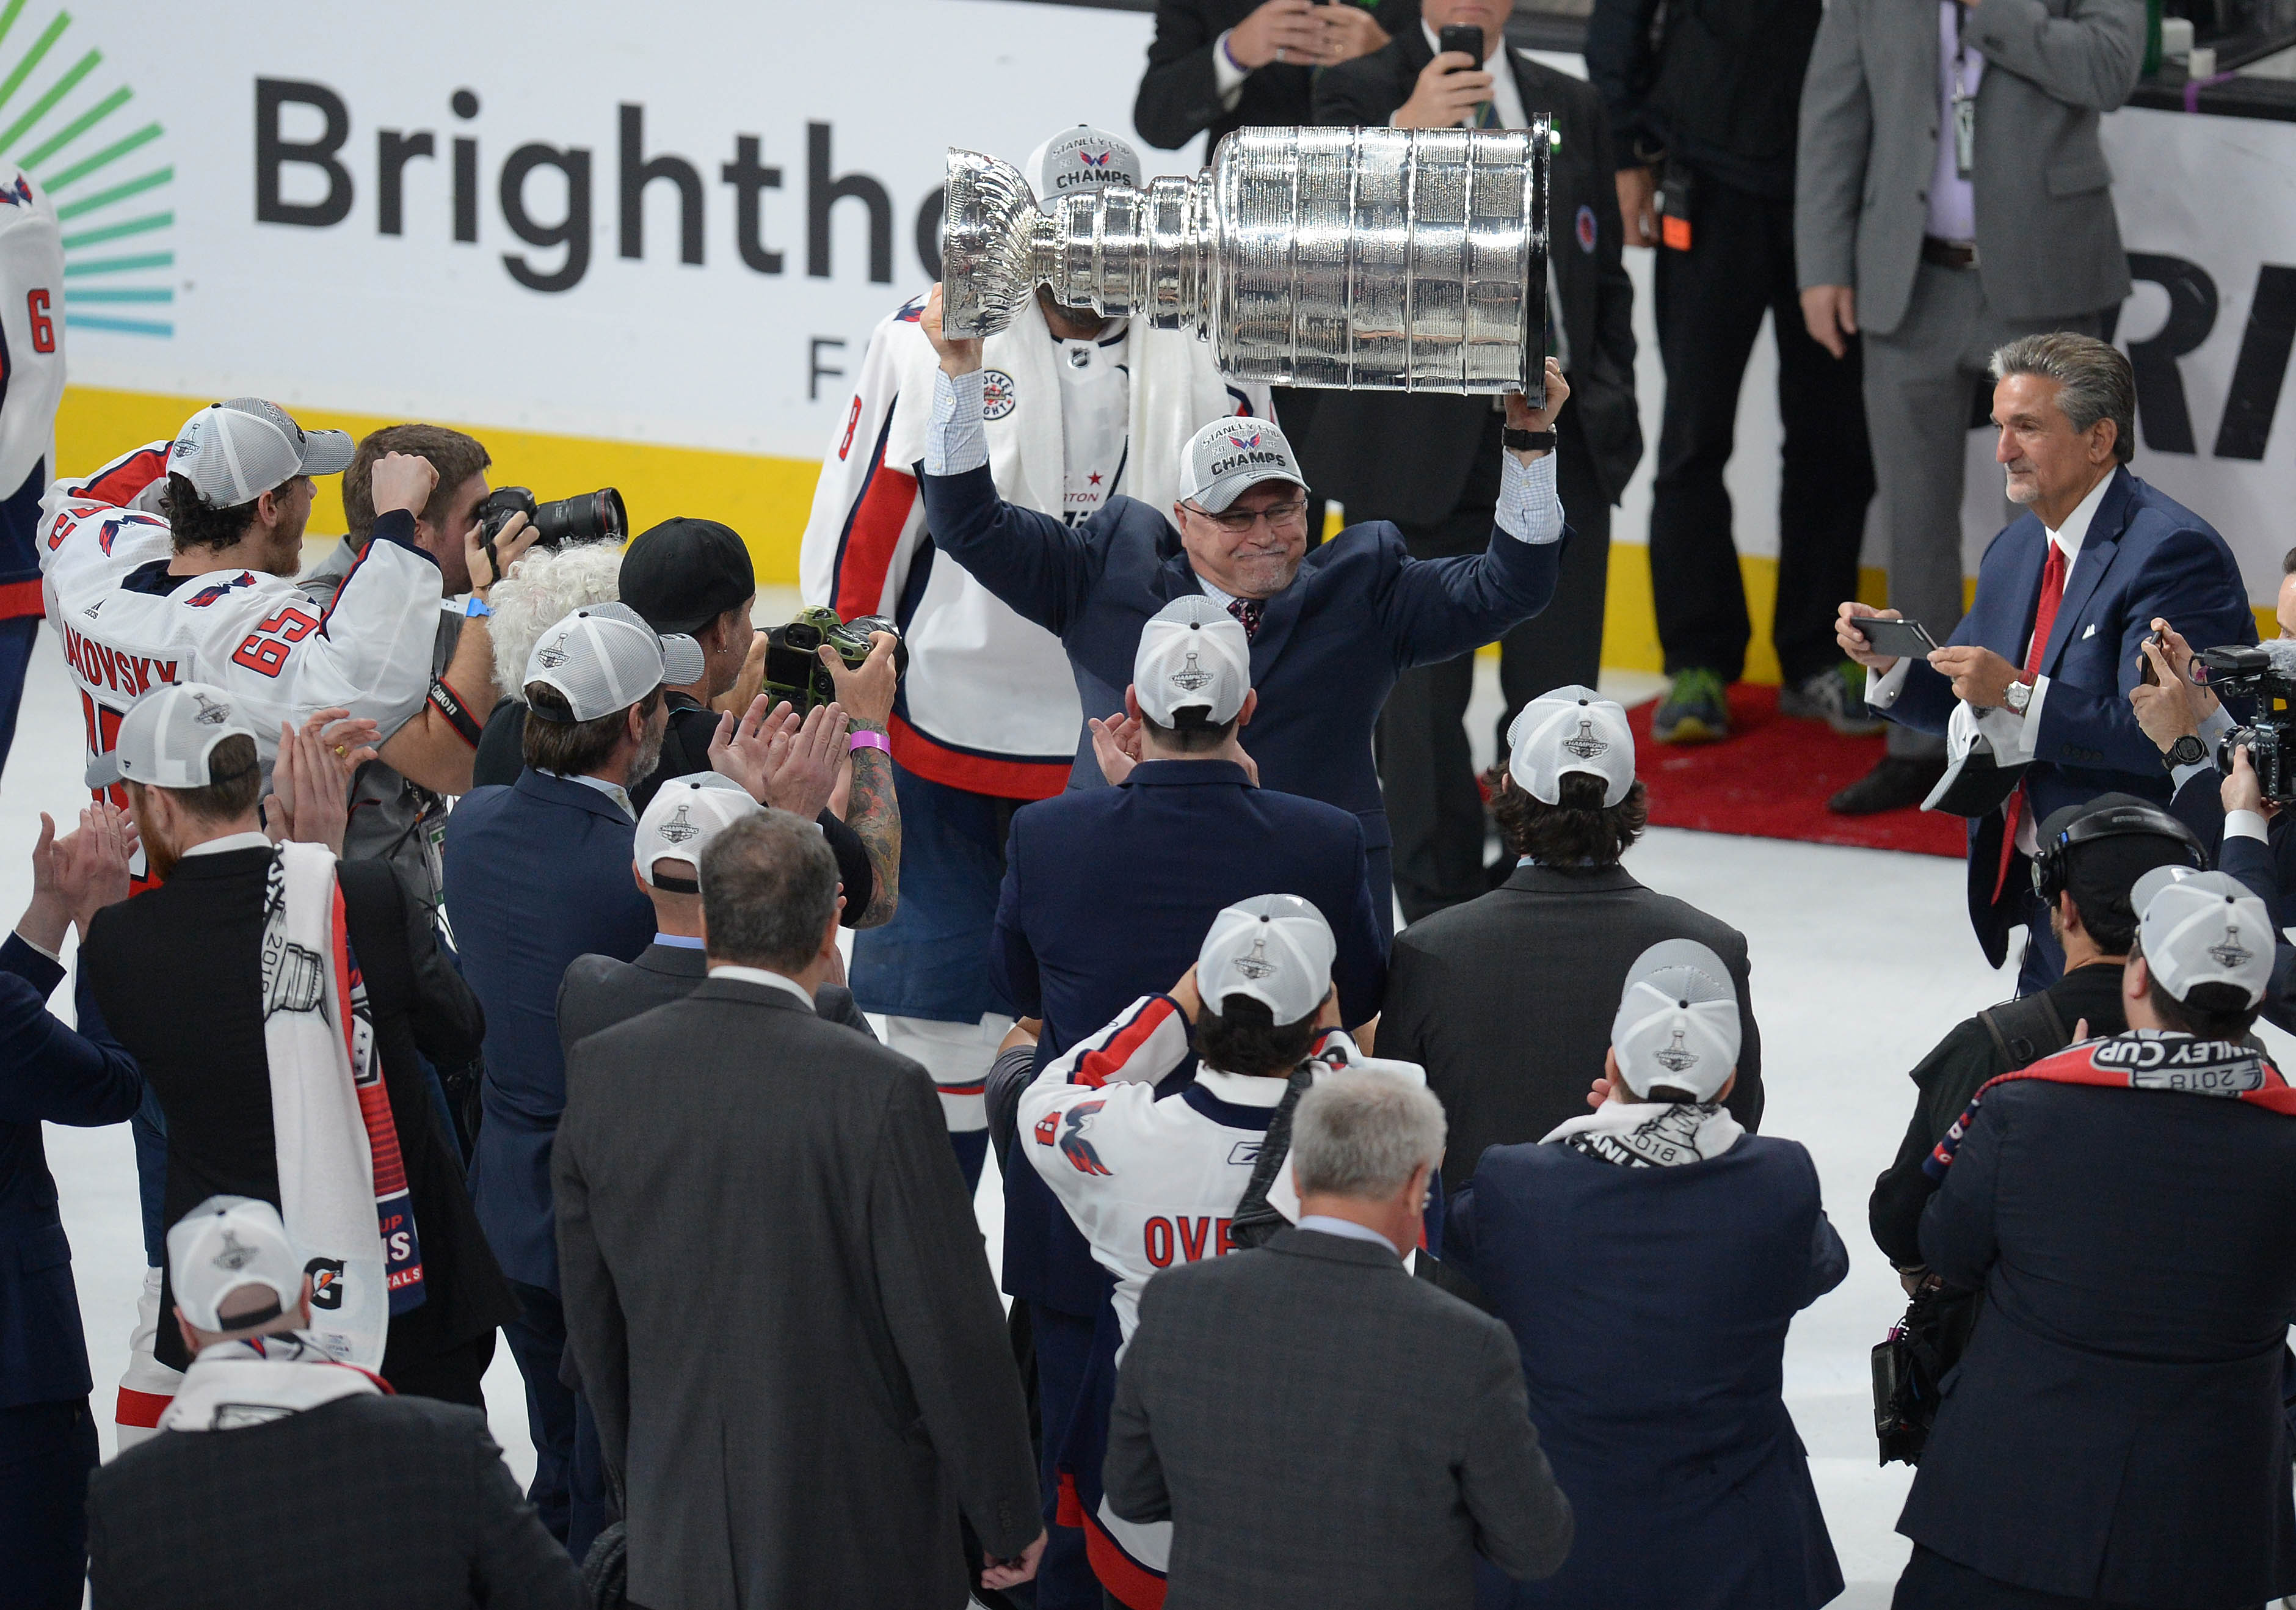 June 7, 2018; Las Vegas, NV, USA; Washington Capitals Barry Trotz lifts the Stanley Cup following game five of the 2018 Stanley Cup Final at T-Mobile Arena. Mandatory Credit: Gary A. Vasquez-USA TODAY Sports